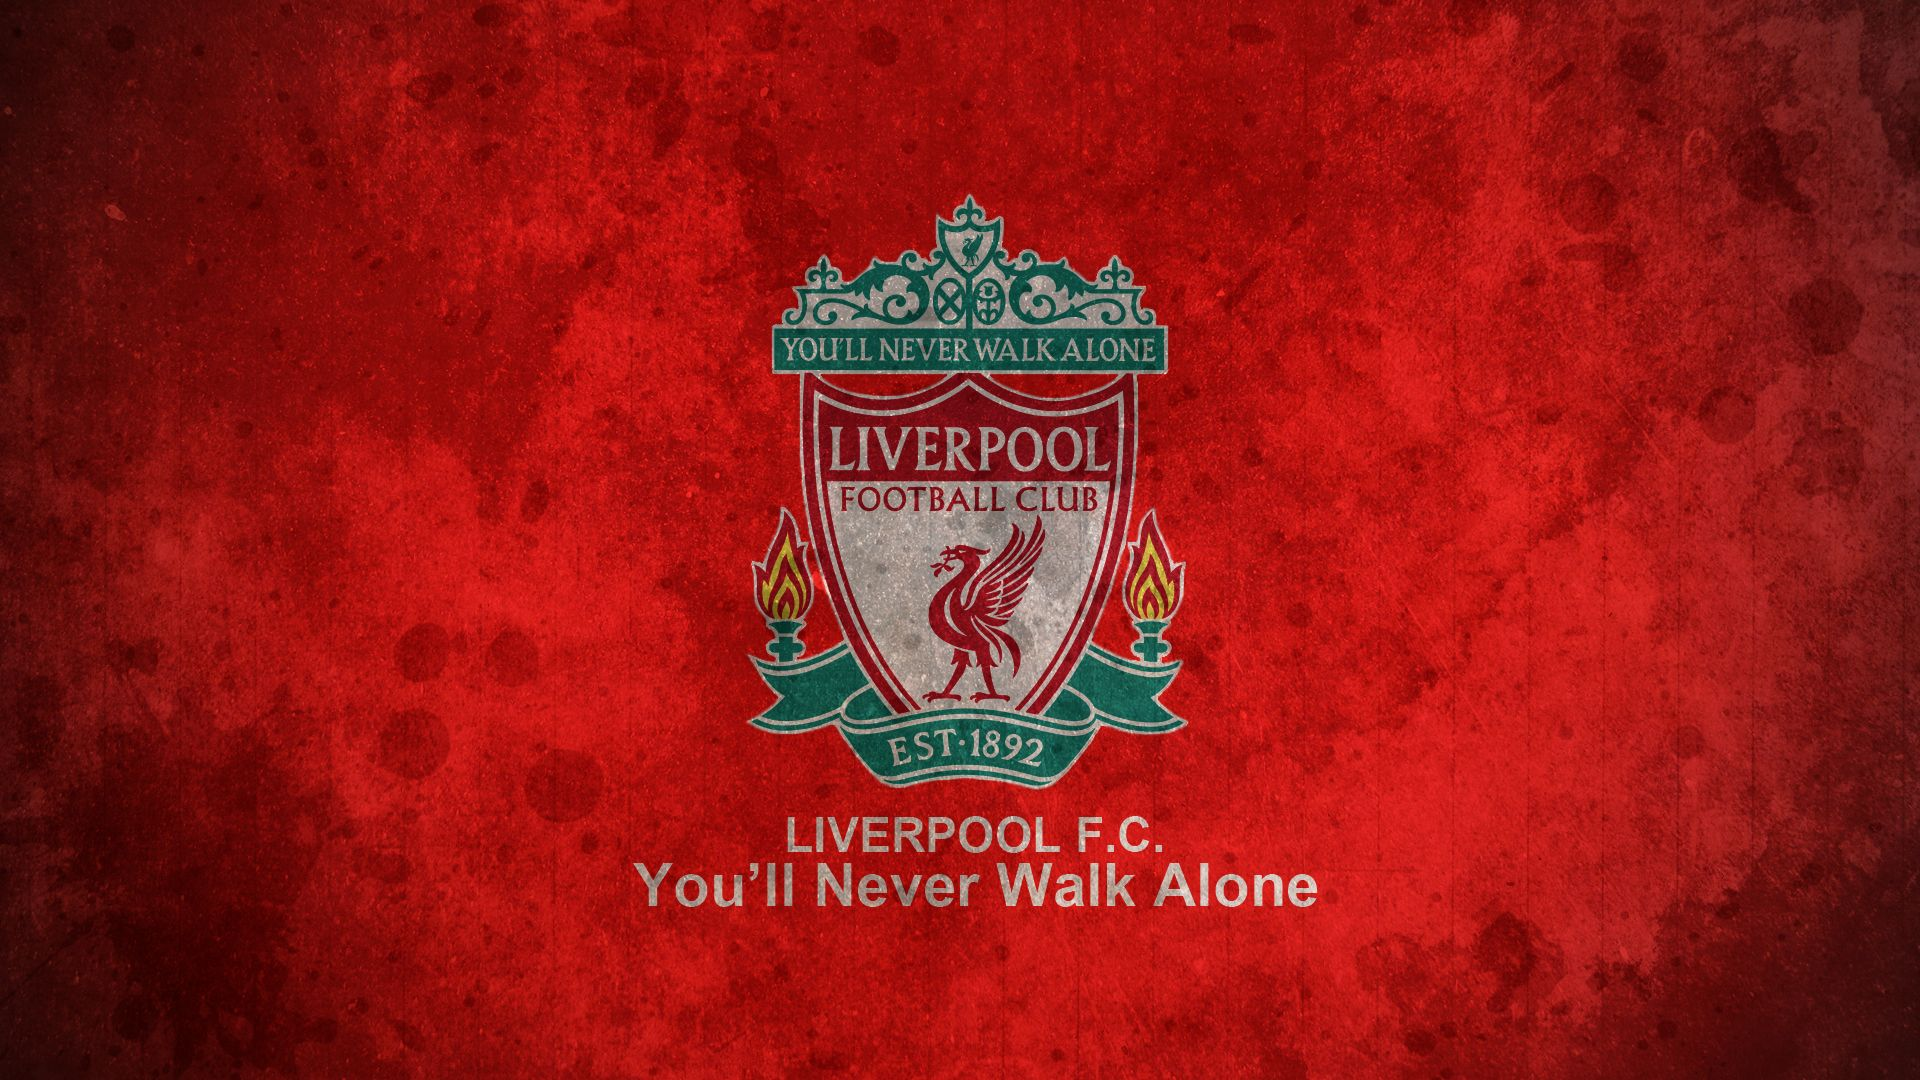 liverpool wallpaper 2014-2015 | liverpool wallpaper ynwa